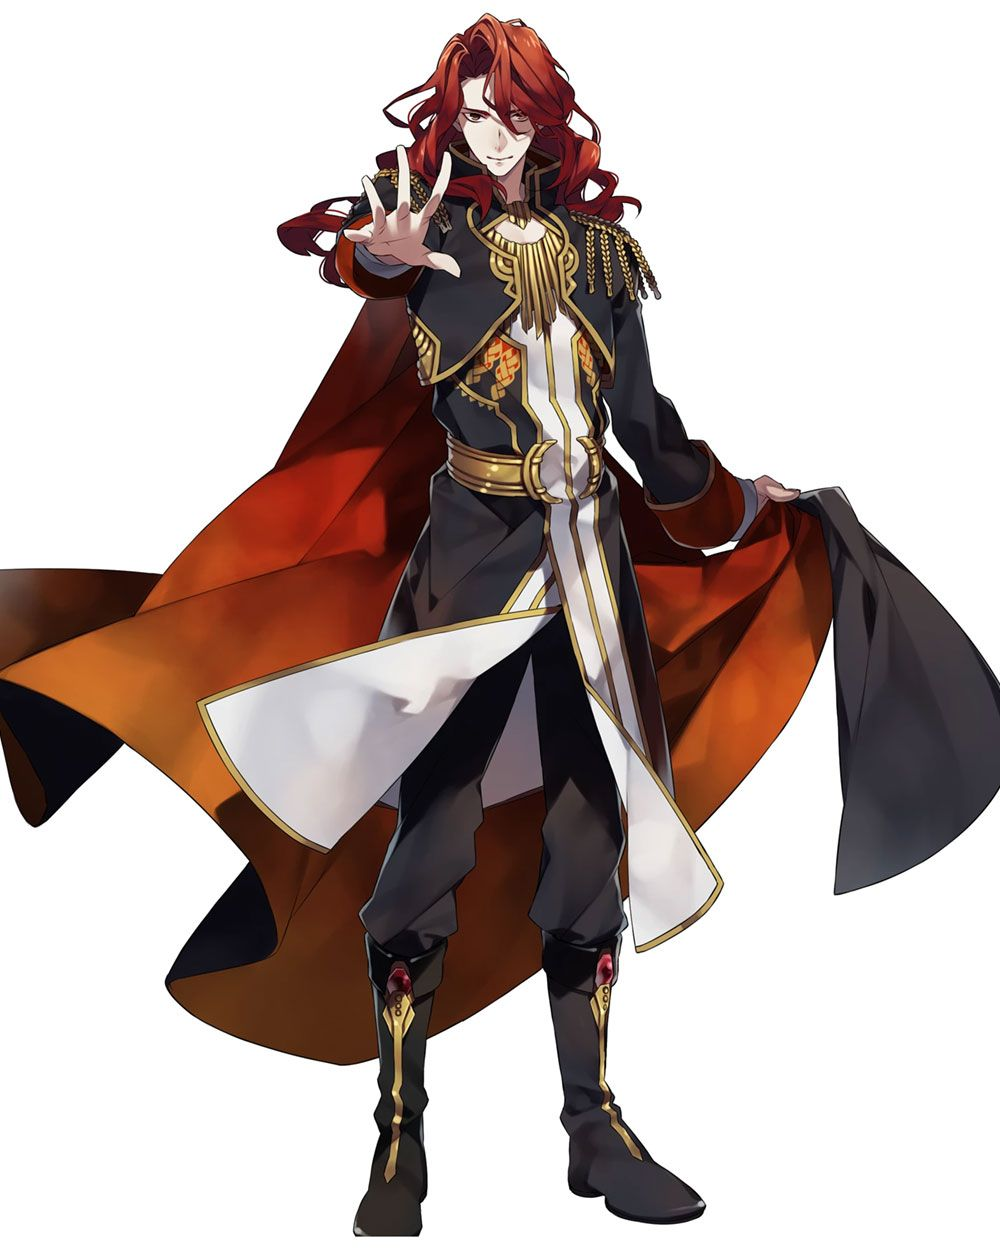 Male Human Wizard Noble Blonde Hair Rich Clothes Fire Emblem